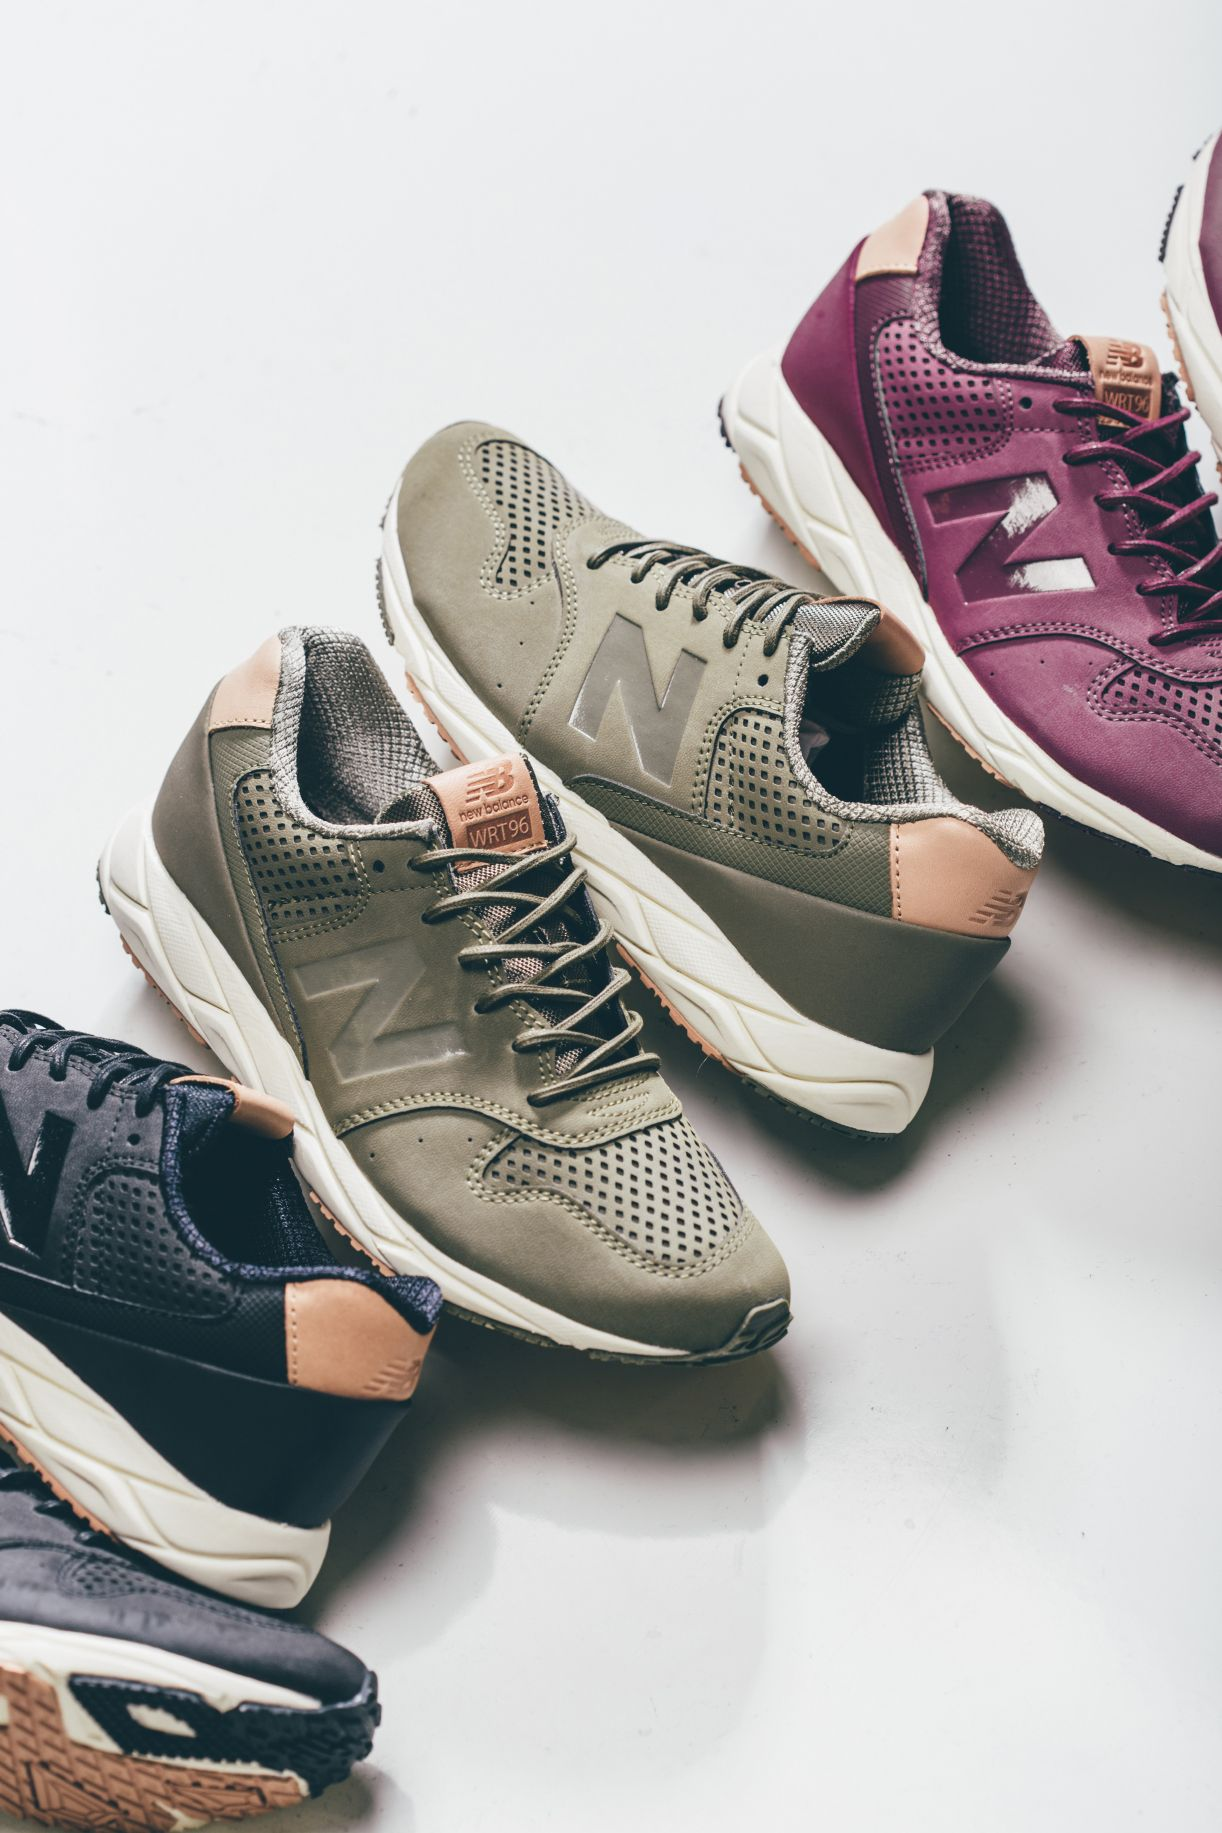 official photos 5c101 f734a New Balance Women s 696  REVlite  Pack  NewBalance  696  Revlite  Fashion   Streetwear  Style  Urban  Lookbook  Photography  Footwear  Sneakers  Kicks   Shoes